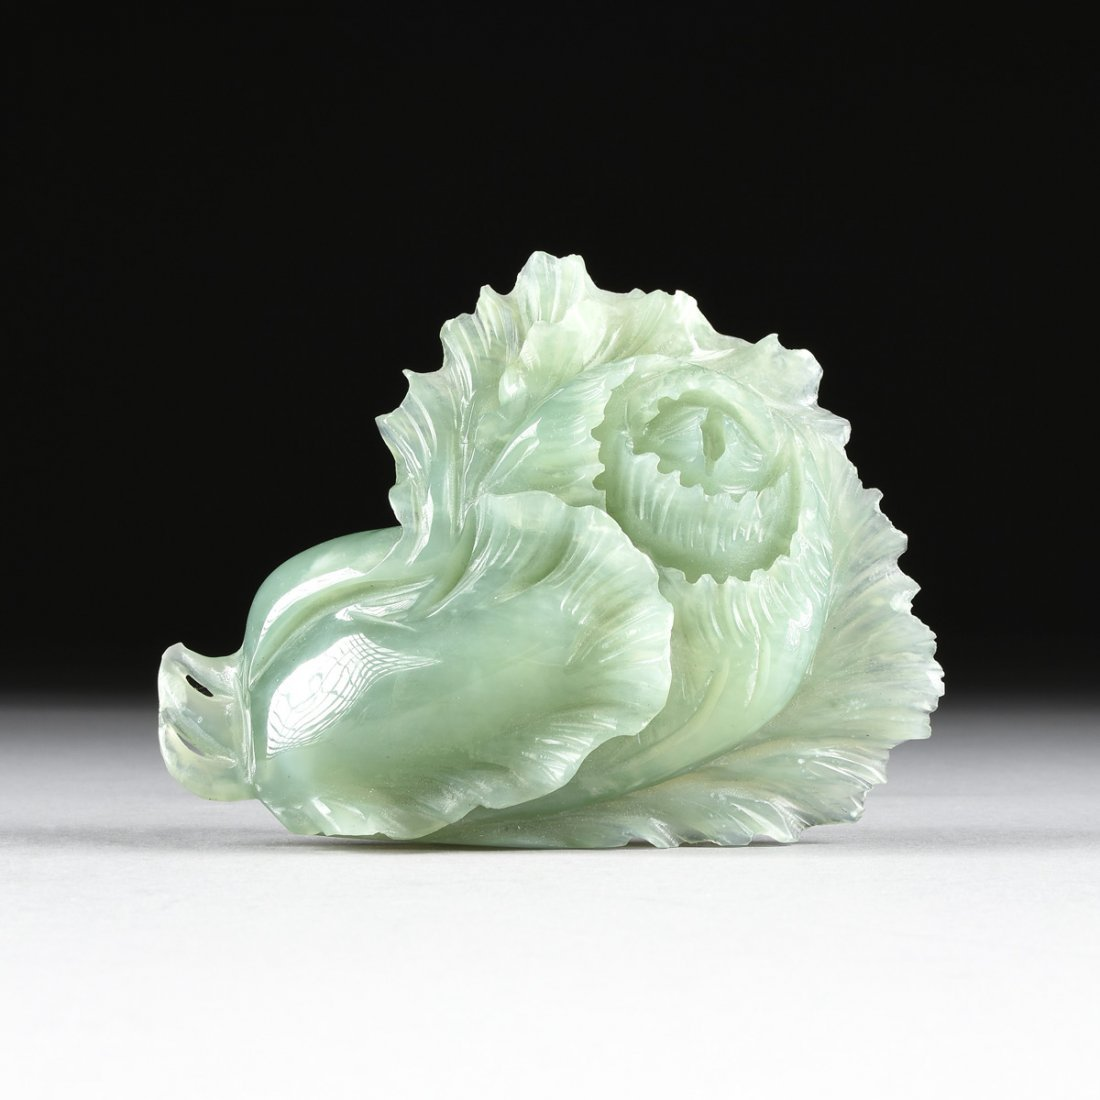 A CHINESE CARVED CELADON JADE OF A BLOSSOM, MODERN,